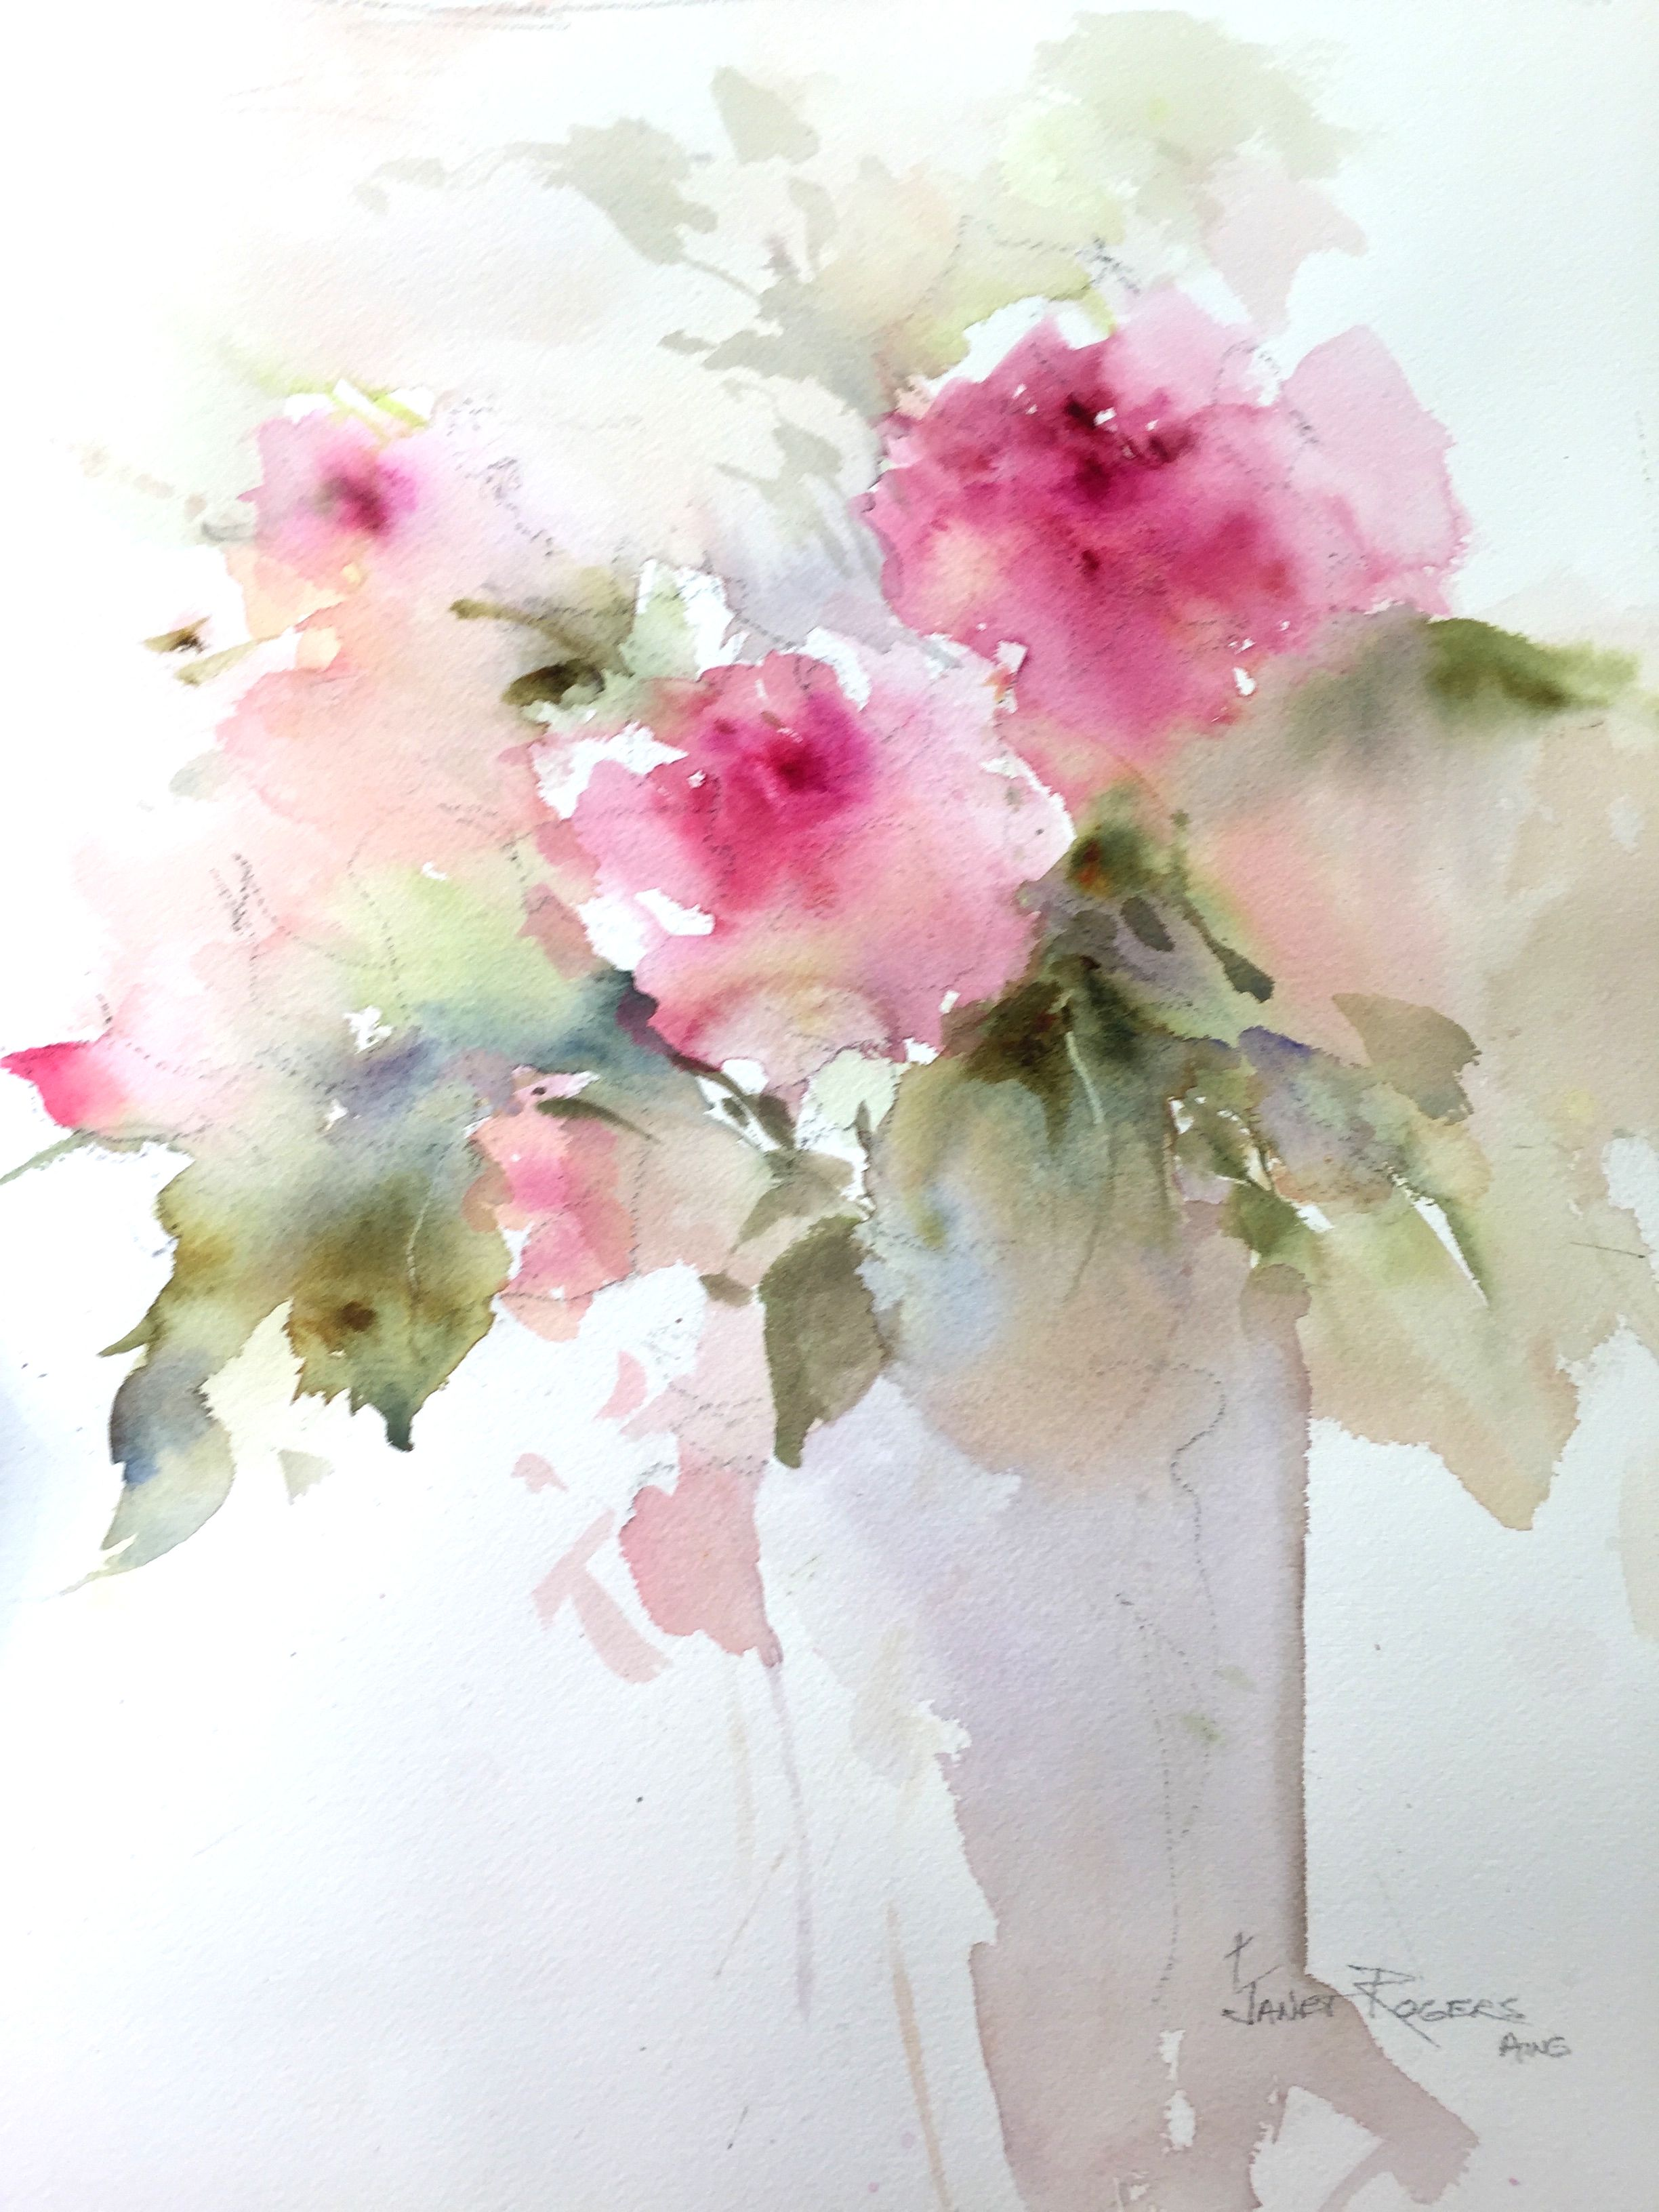 2016 17 janet rogers watercolour flowers pinterest for Abstract watercolour flowers